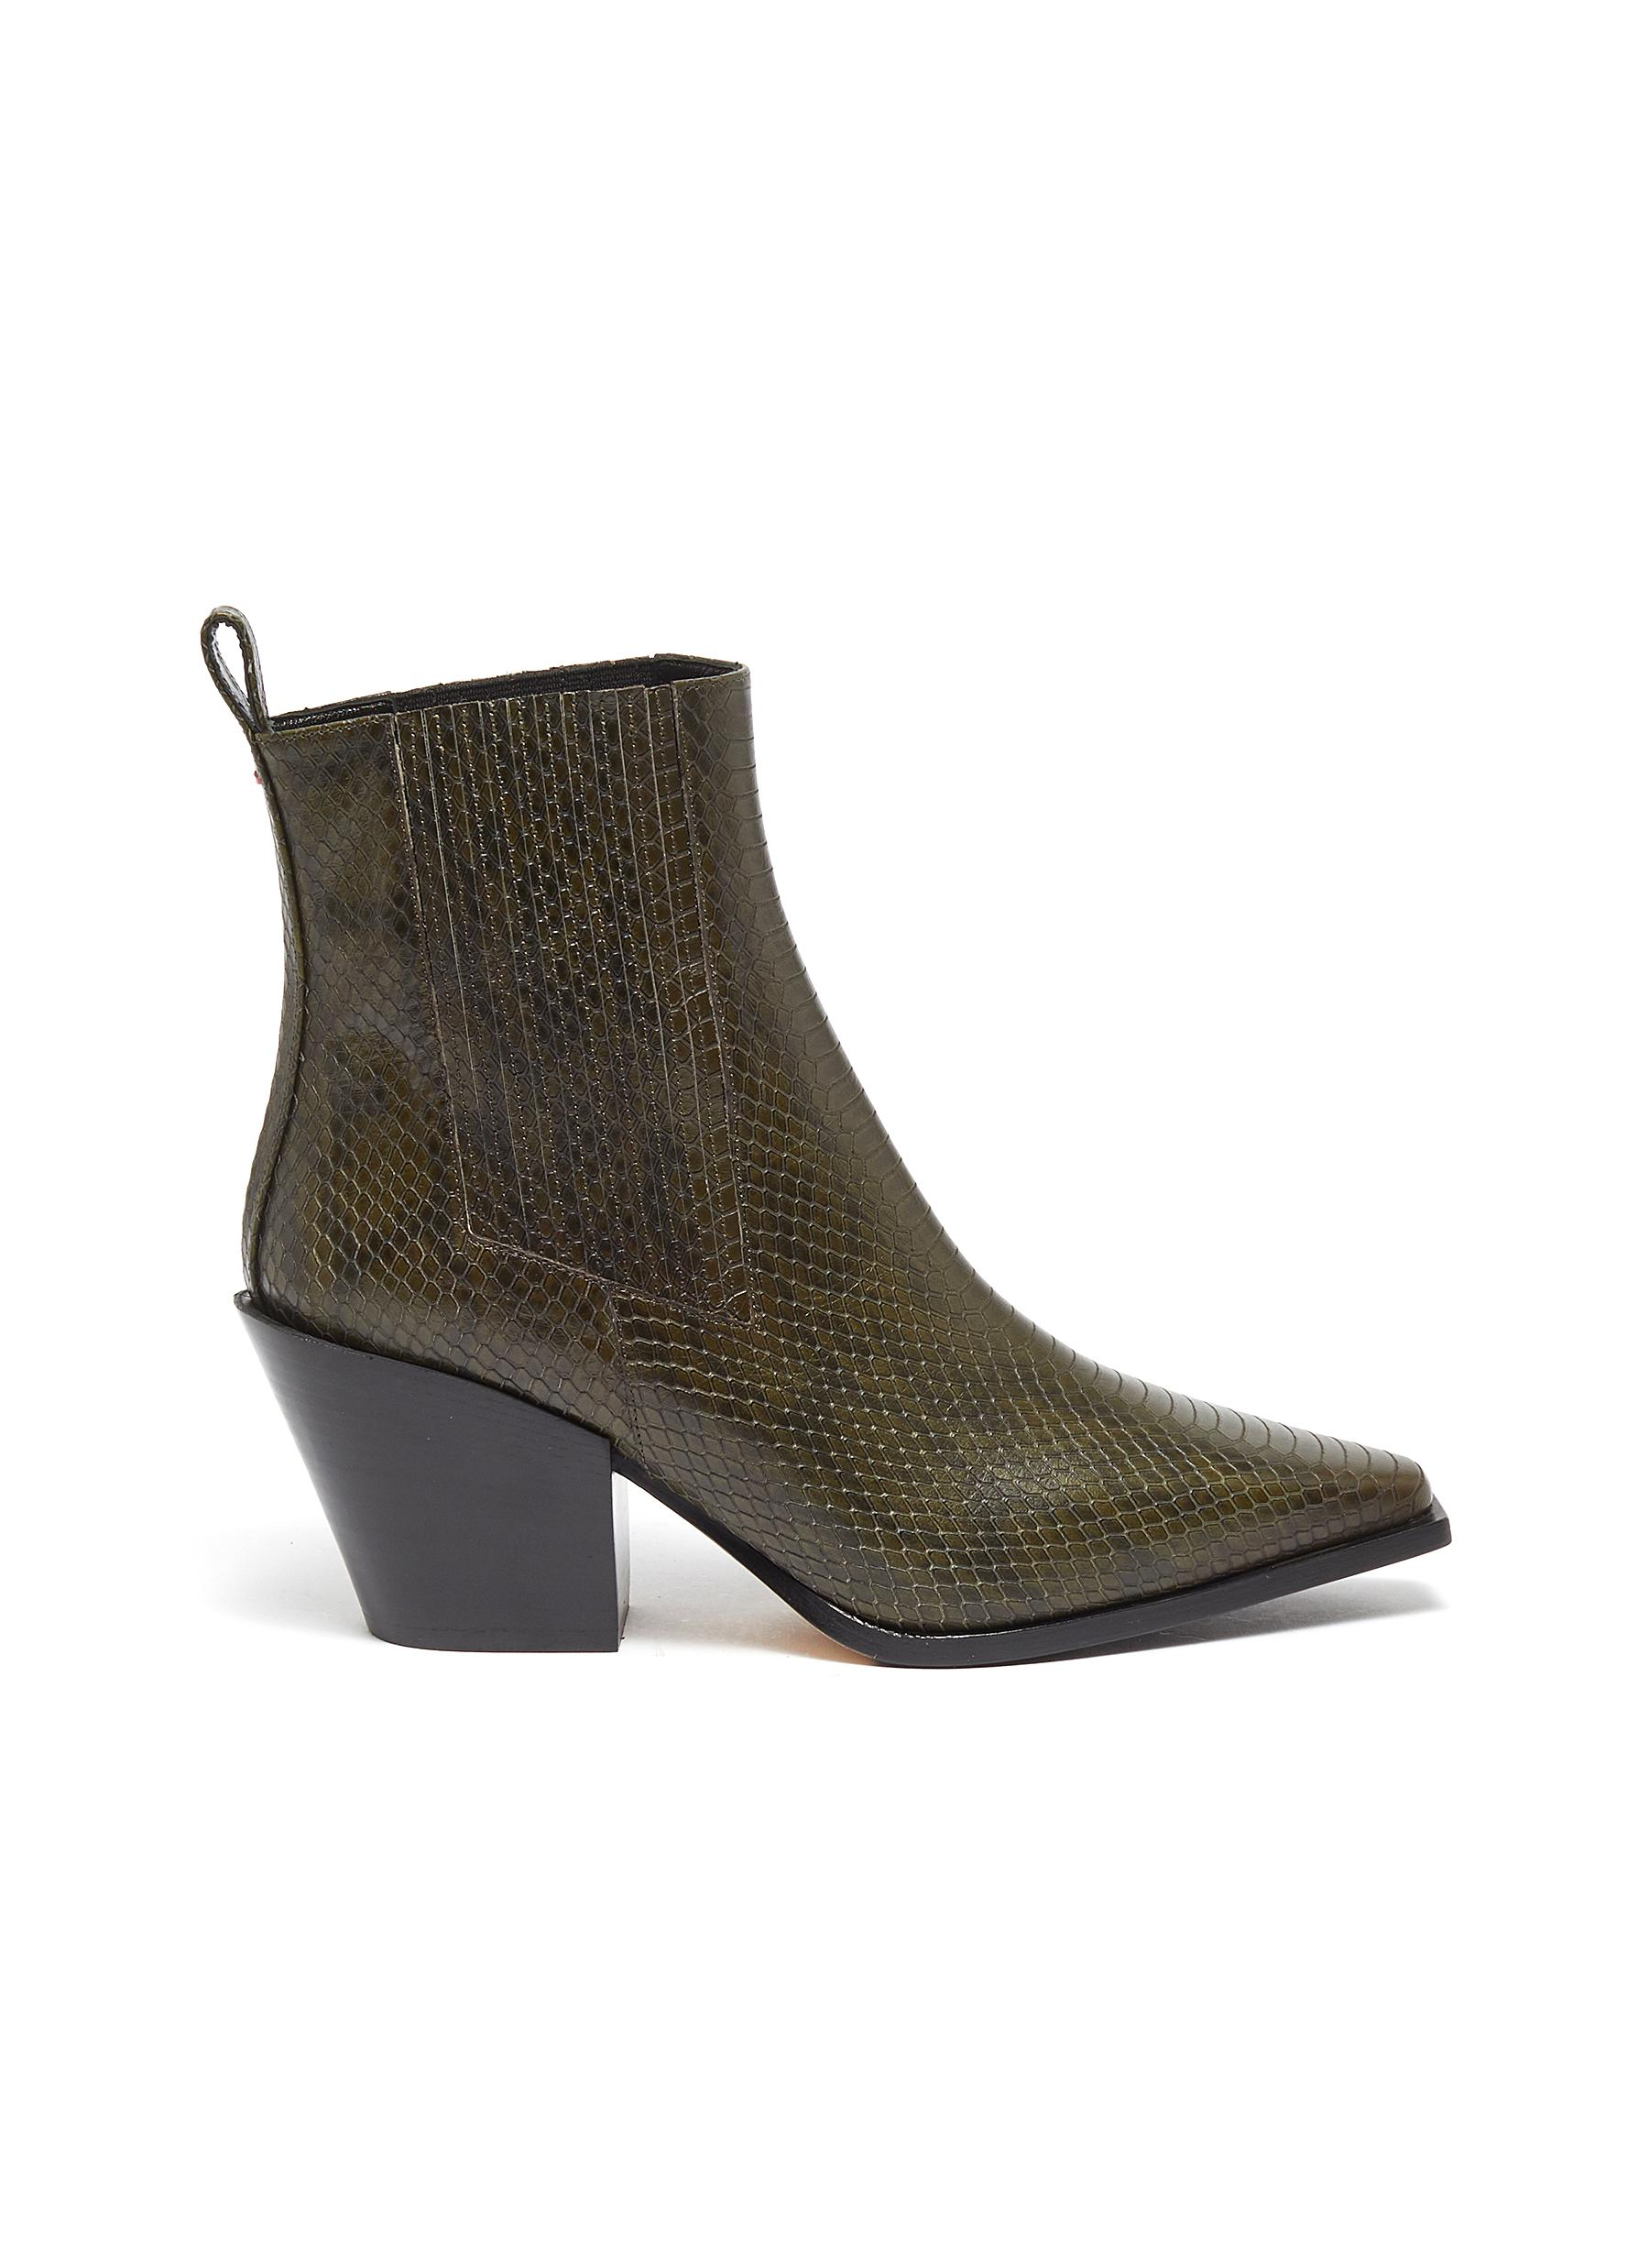 Kate snake embossed leather ankle boots by Aeyde